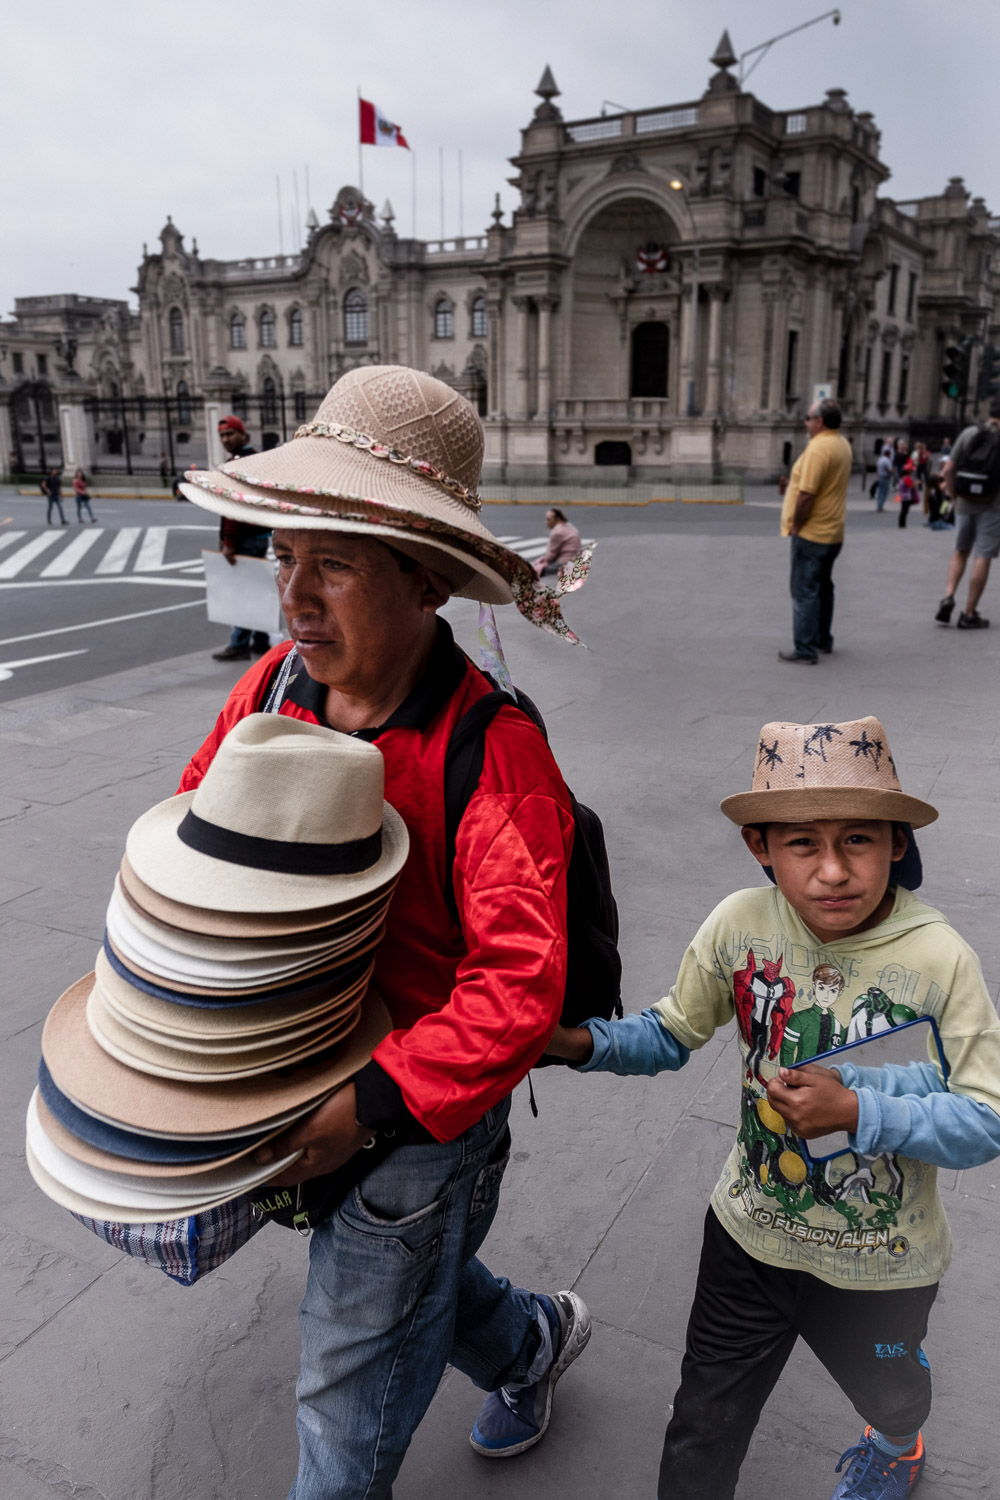 """A man selling hats walks with his son in Lima, Peru. Travel photography and guide by © Natasha Lequepeys for """"And Then I Met Yoko"""". #photoblog #travelblog #travelperu"""